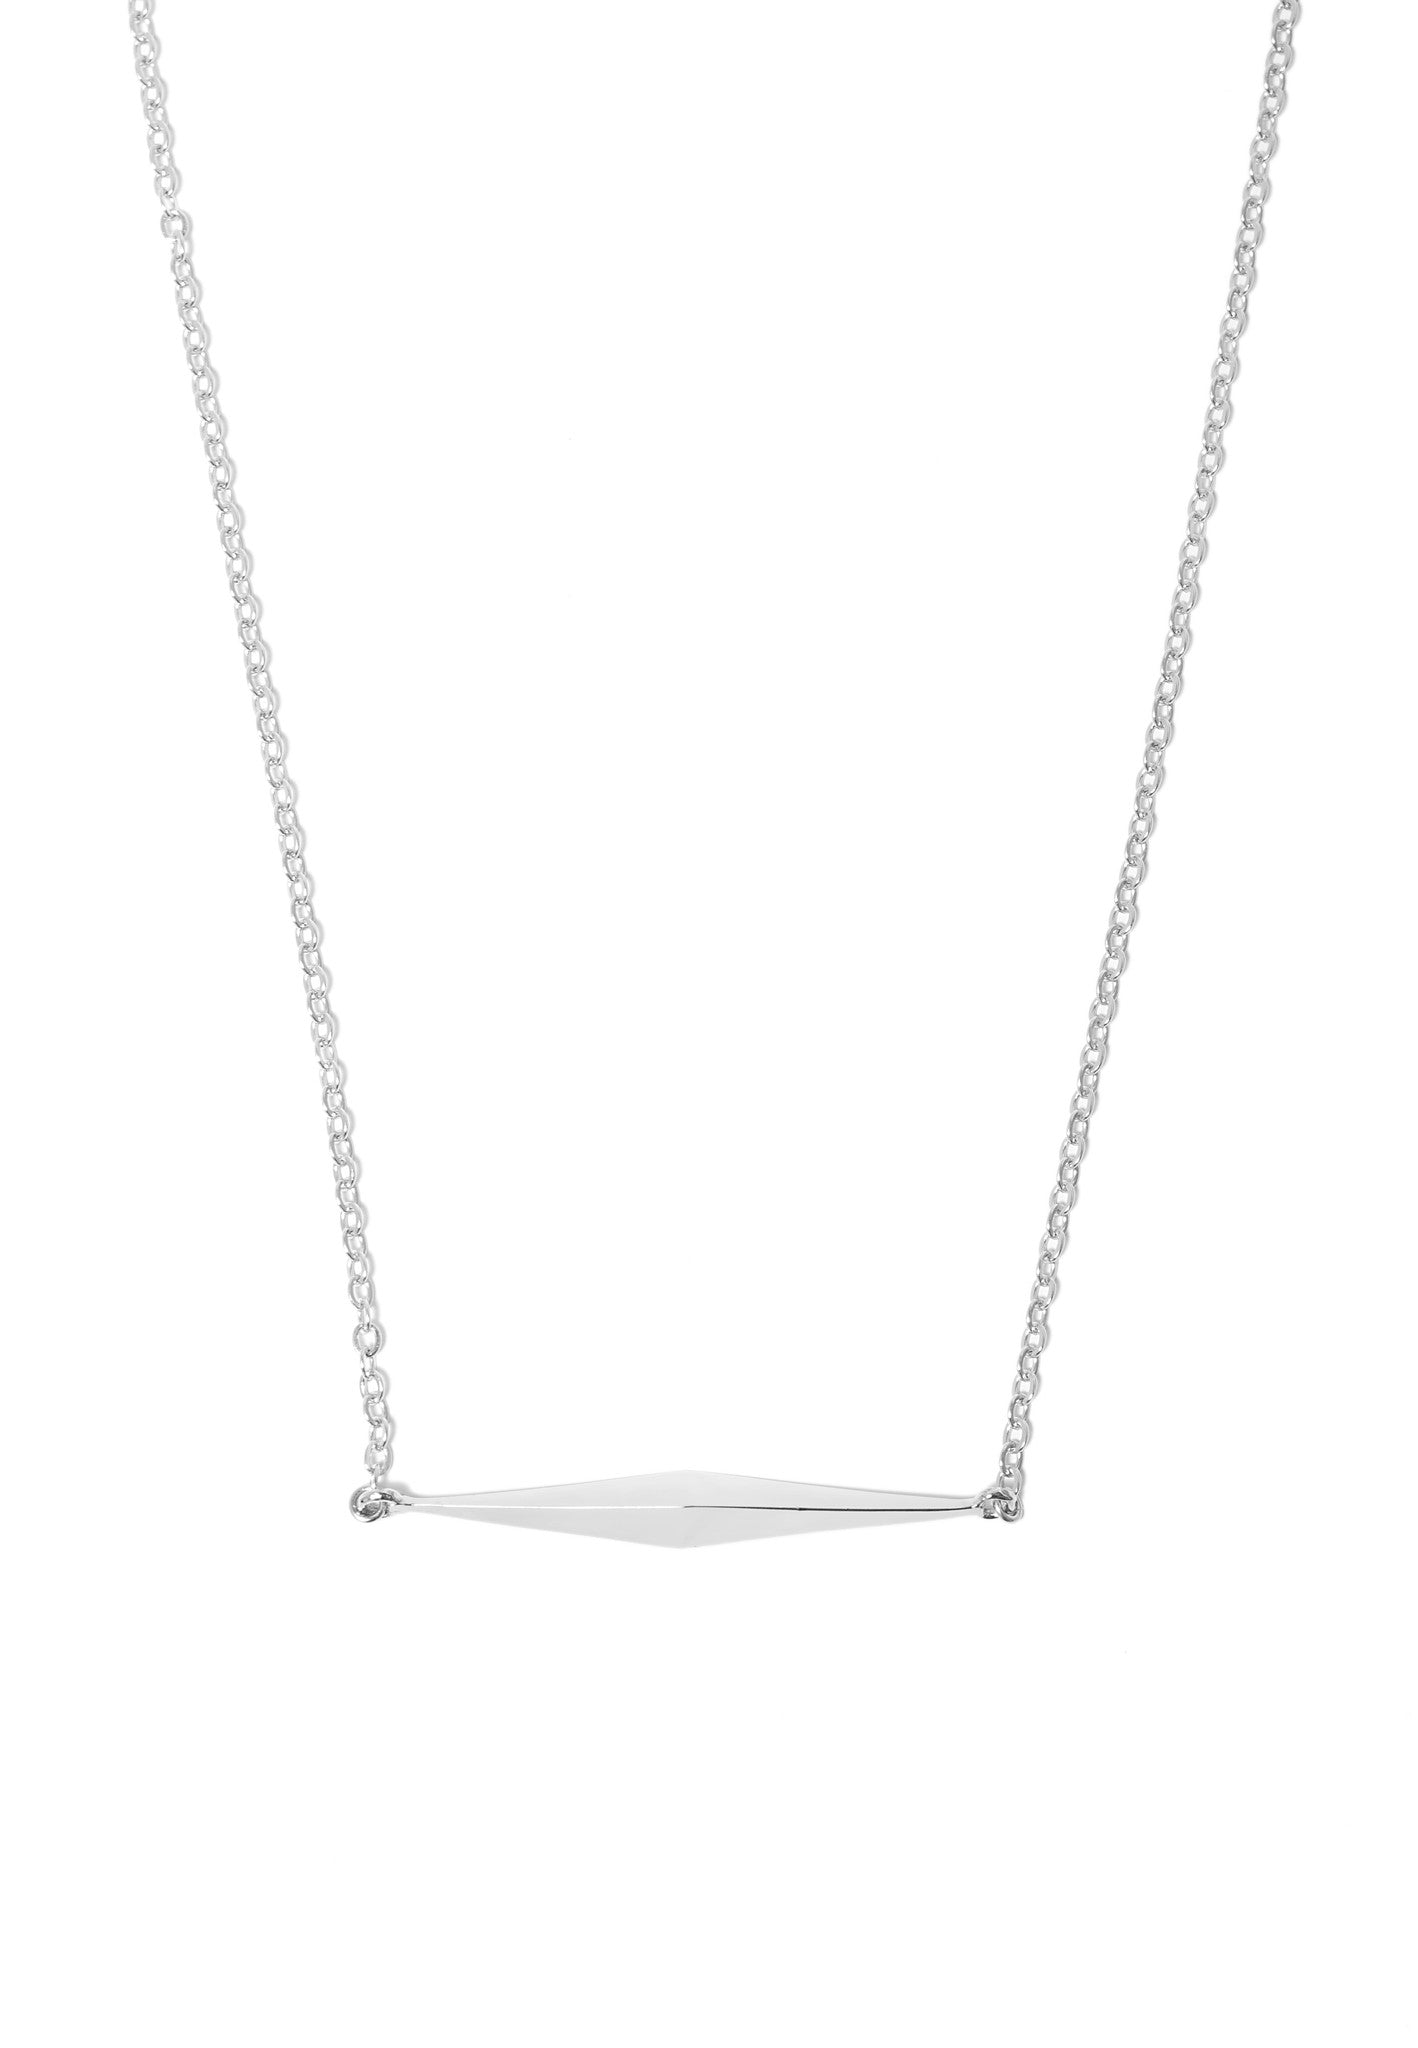 DIAMOND TEARDROP NECKLACE - MAKKO